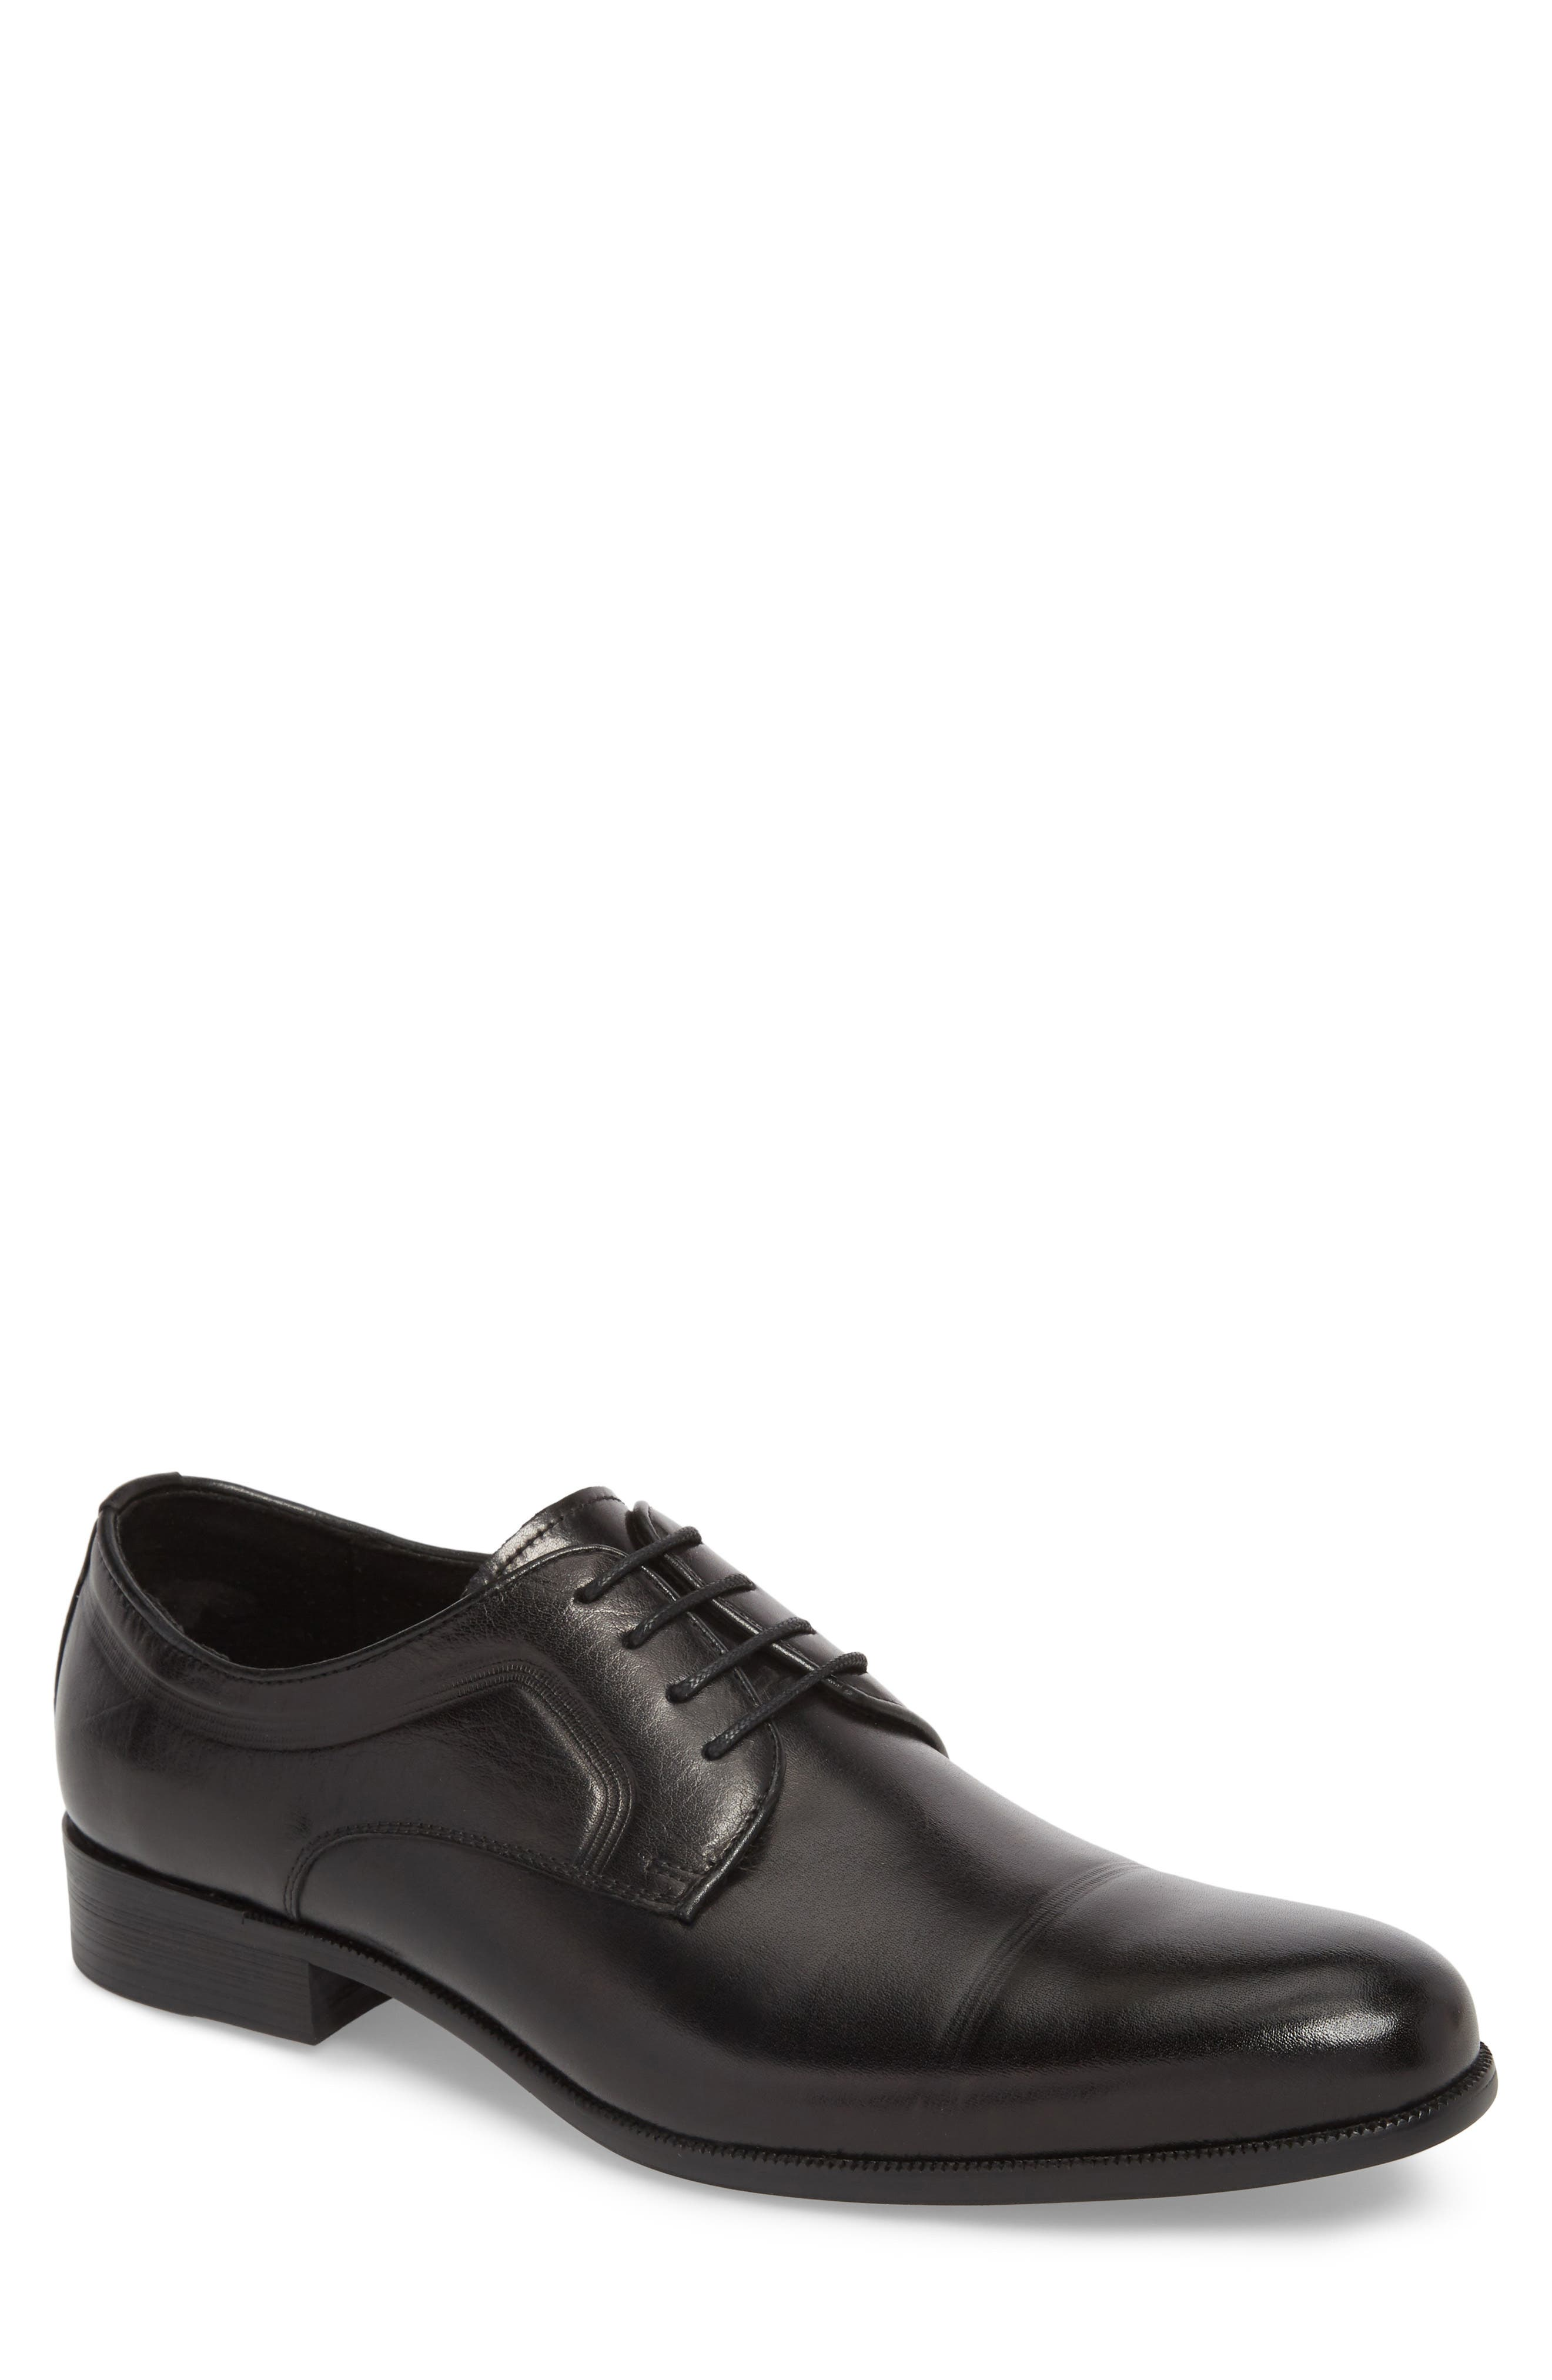 Chief Cap Toe Derby,                             Main thumbnail 1, color,                             Black Leather